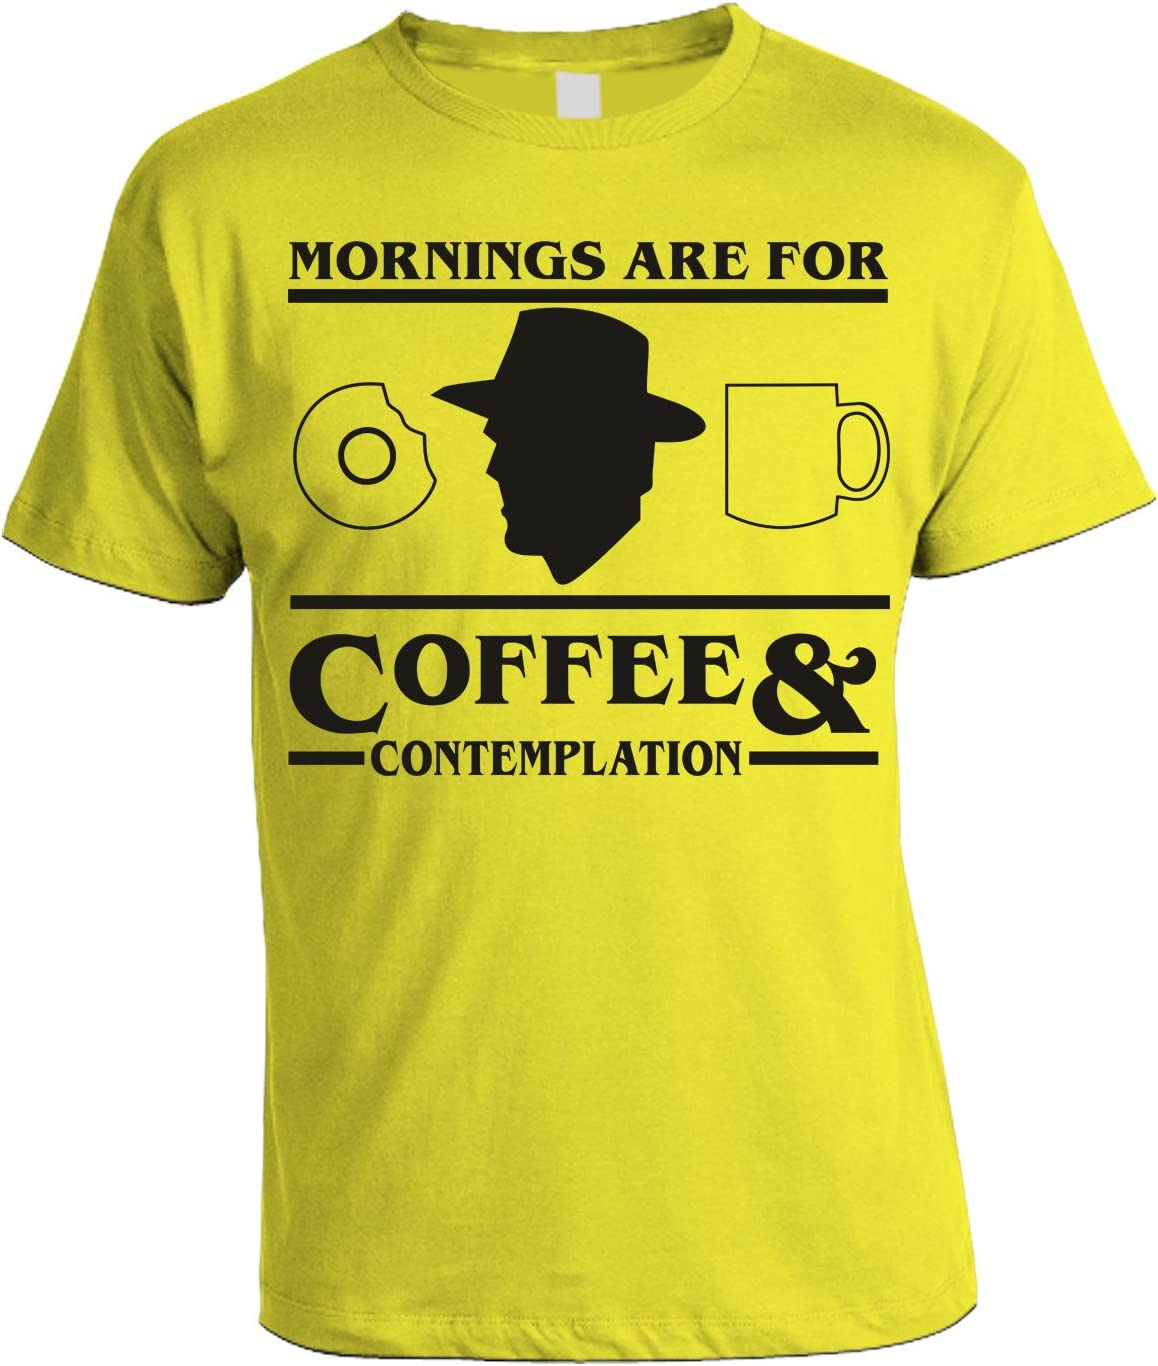 in Cotone Hopper- Serie TV Mornings Are for Coffee And Contemplation st2 bubbleshirt Tshirt Stranger Things